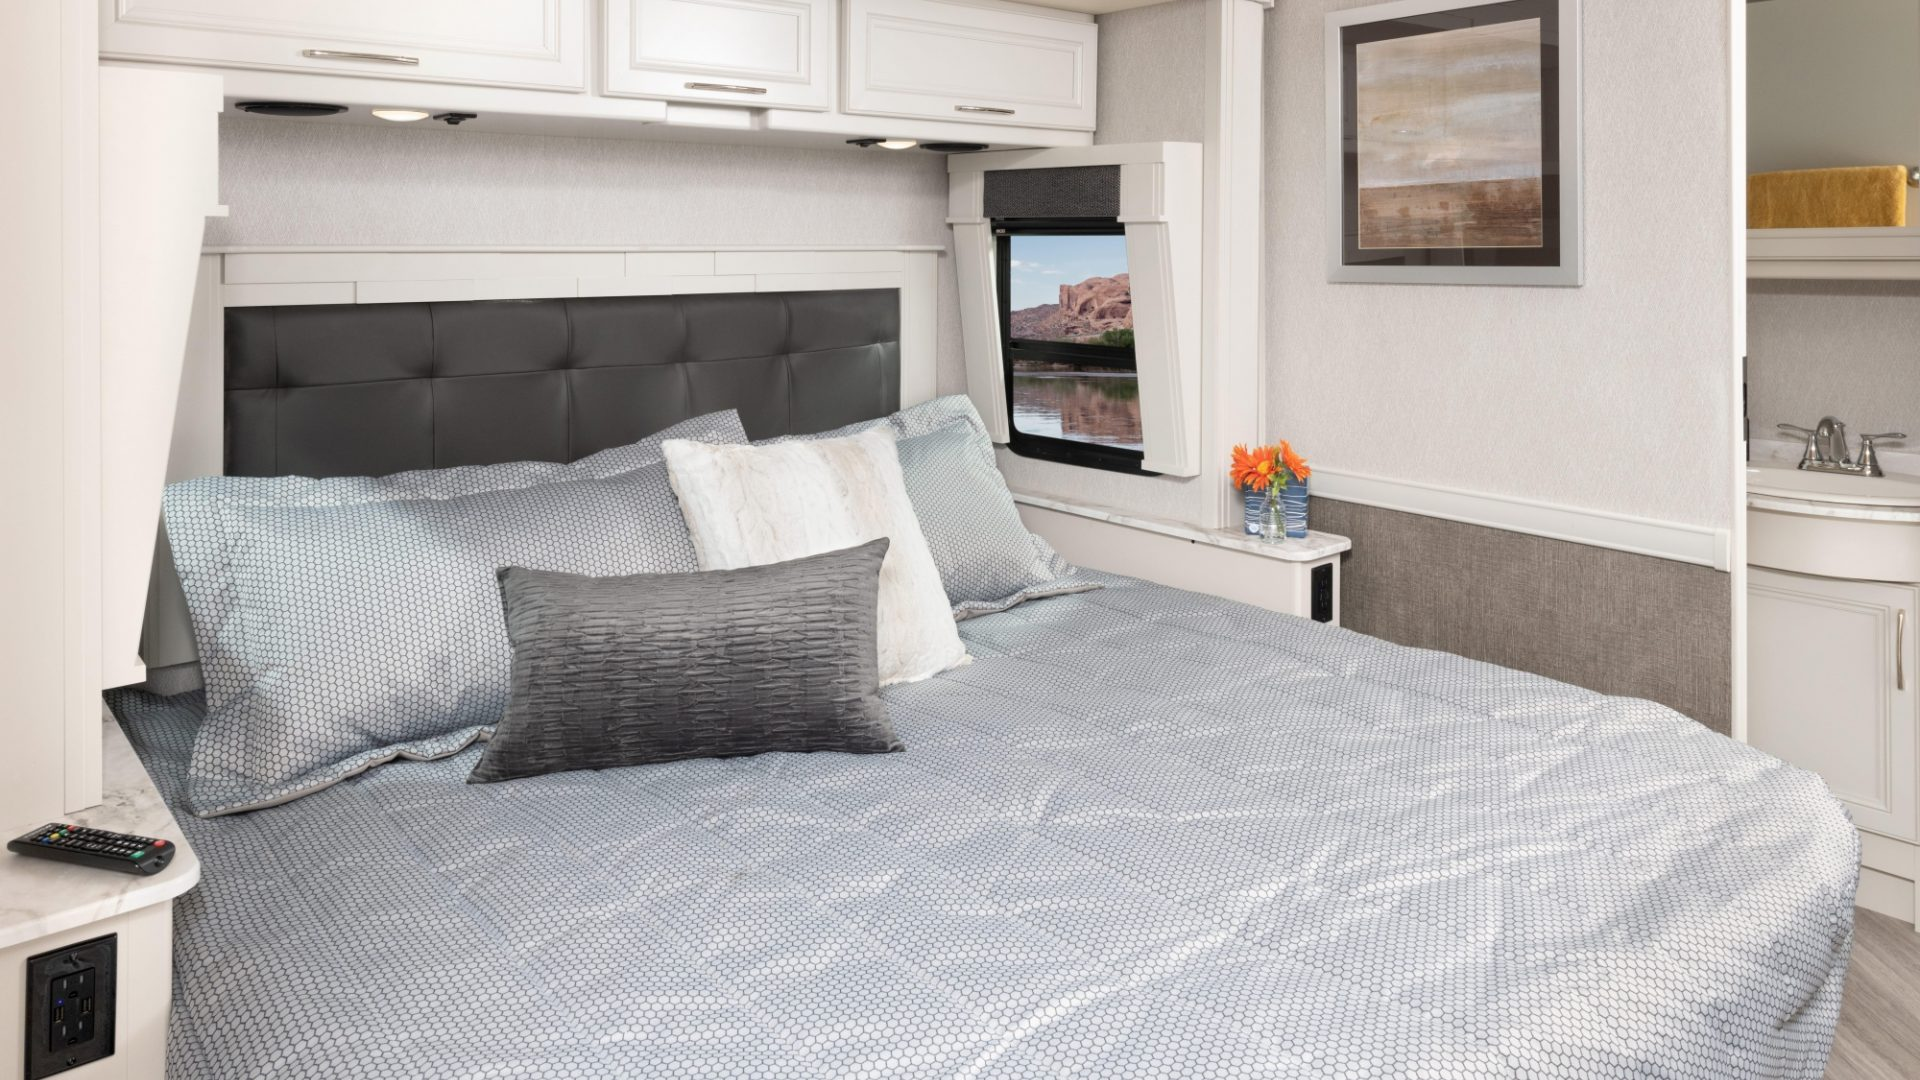 14 masterbed SW35 K Guinness SA MY22 7289